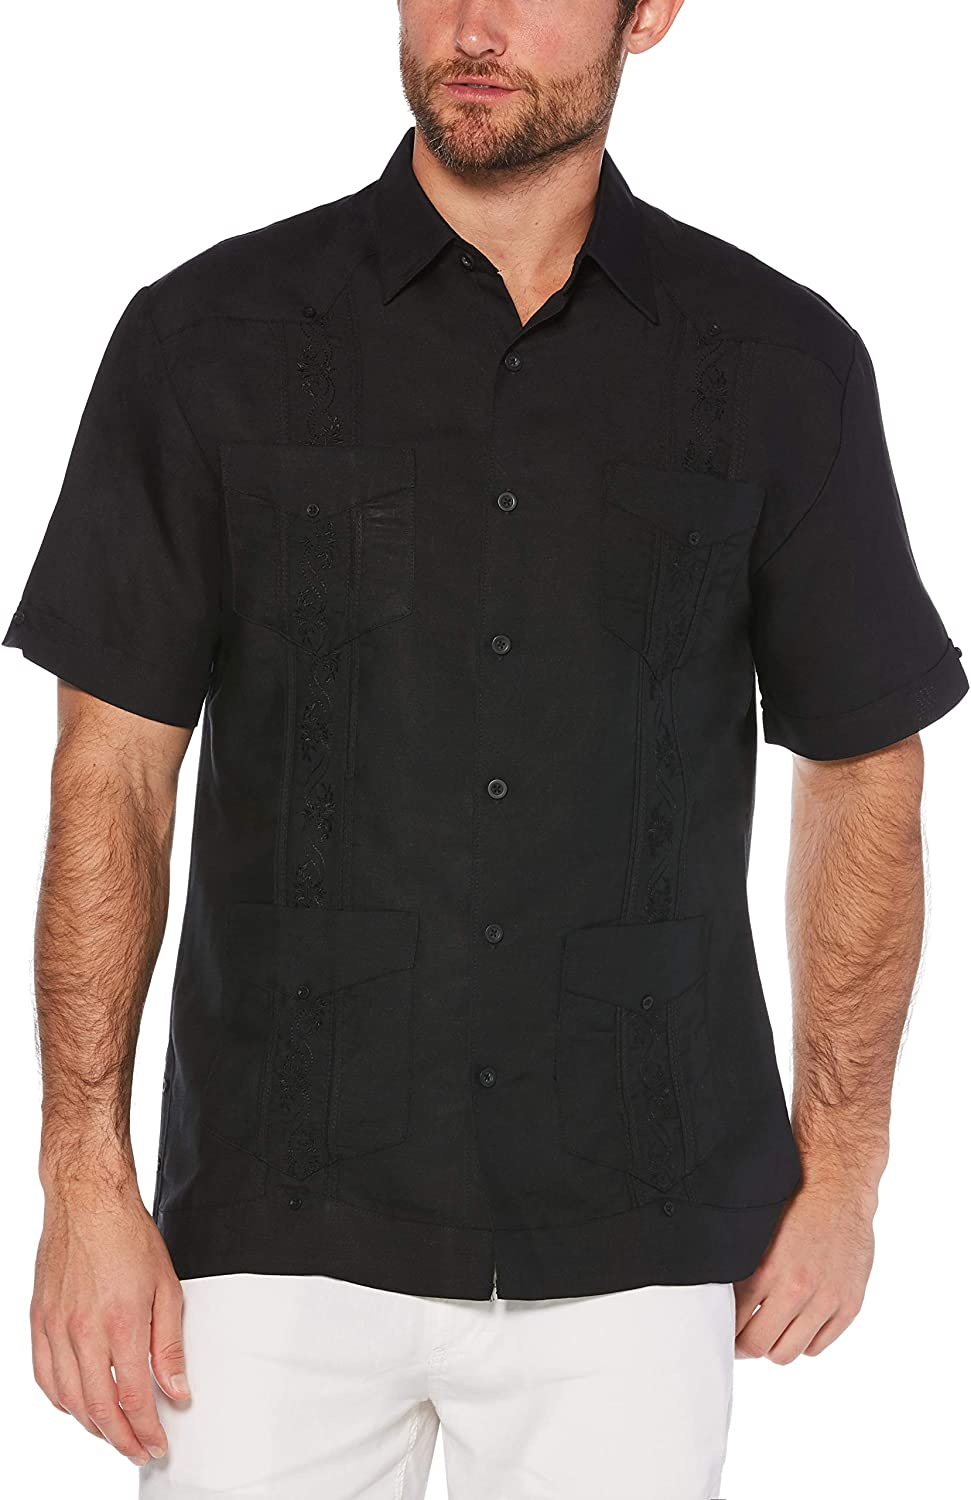 Cubavera Men's Short Sleeve Embroidered Guayabera Shirt